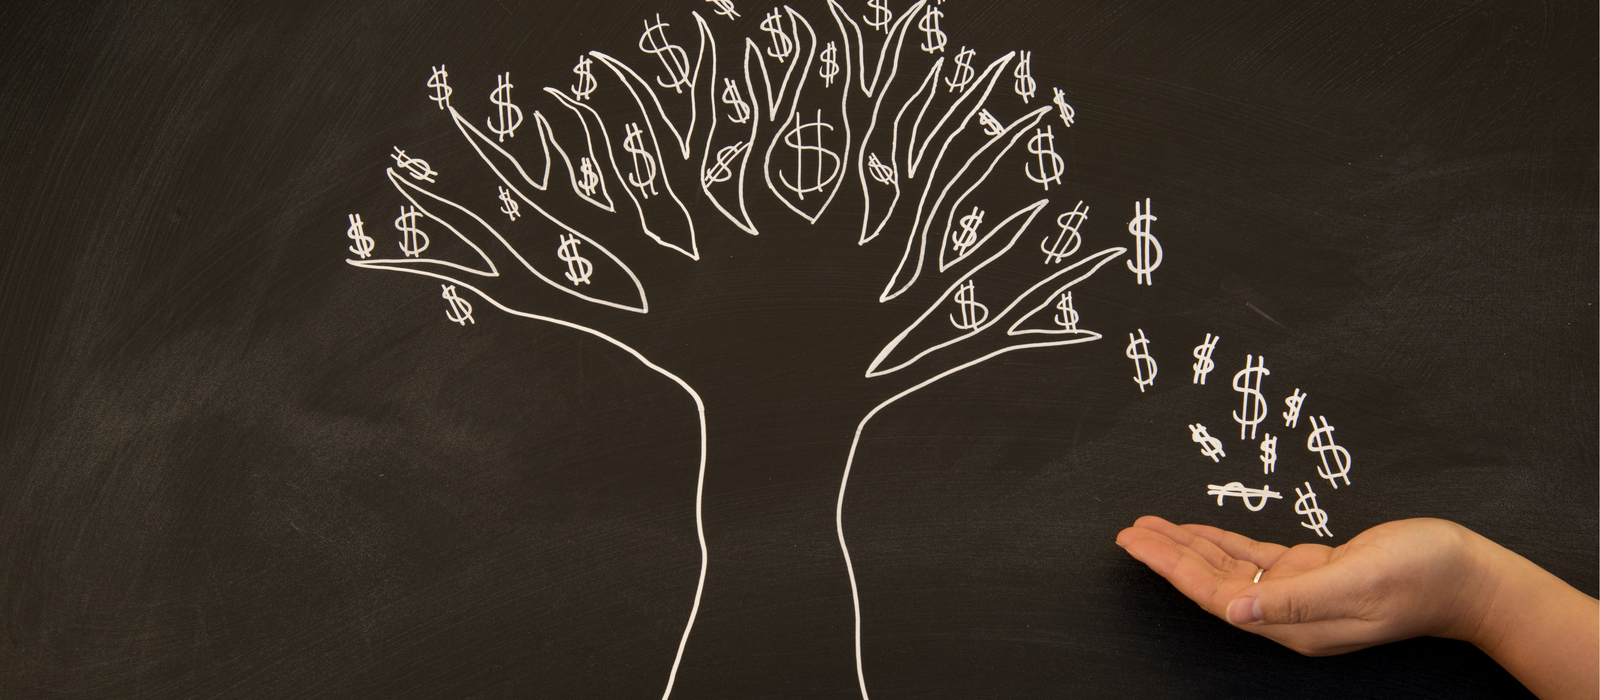 Women and financial literacy